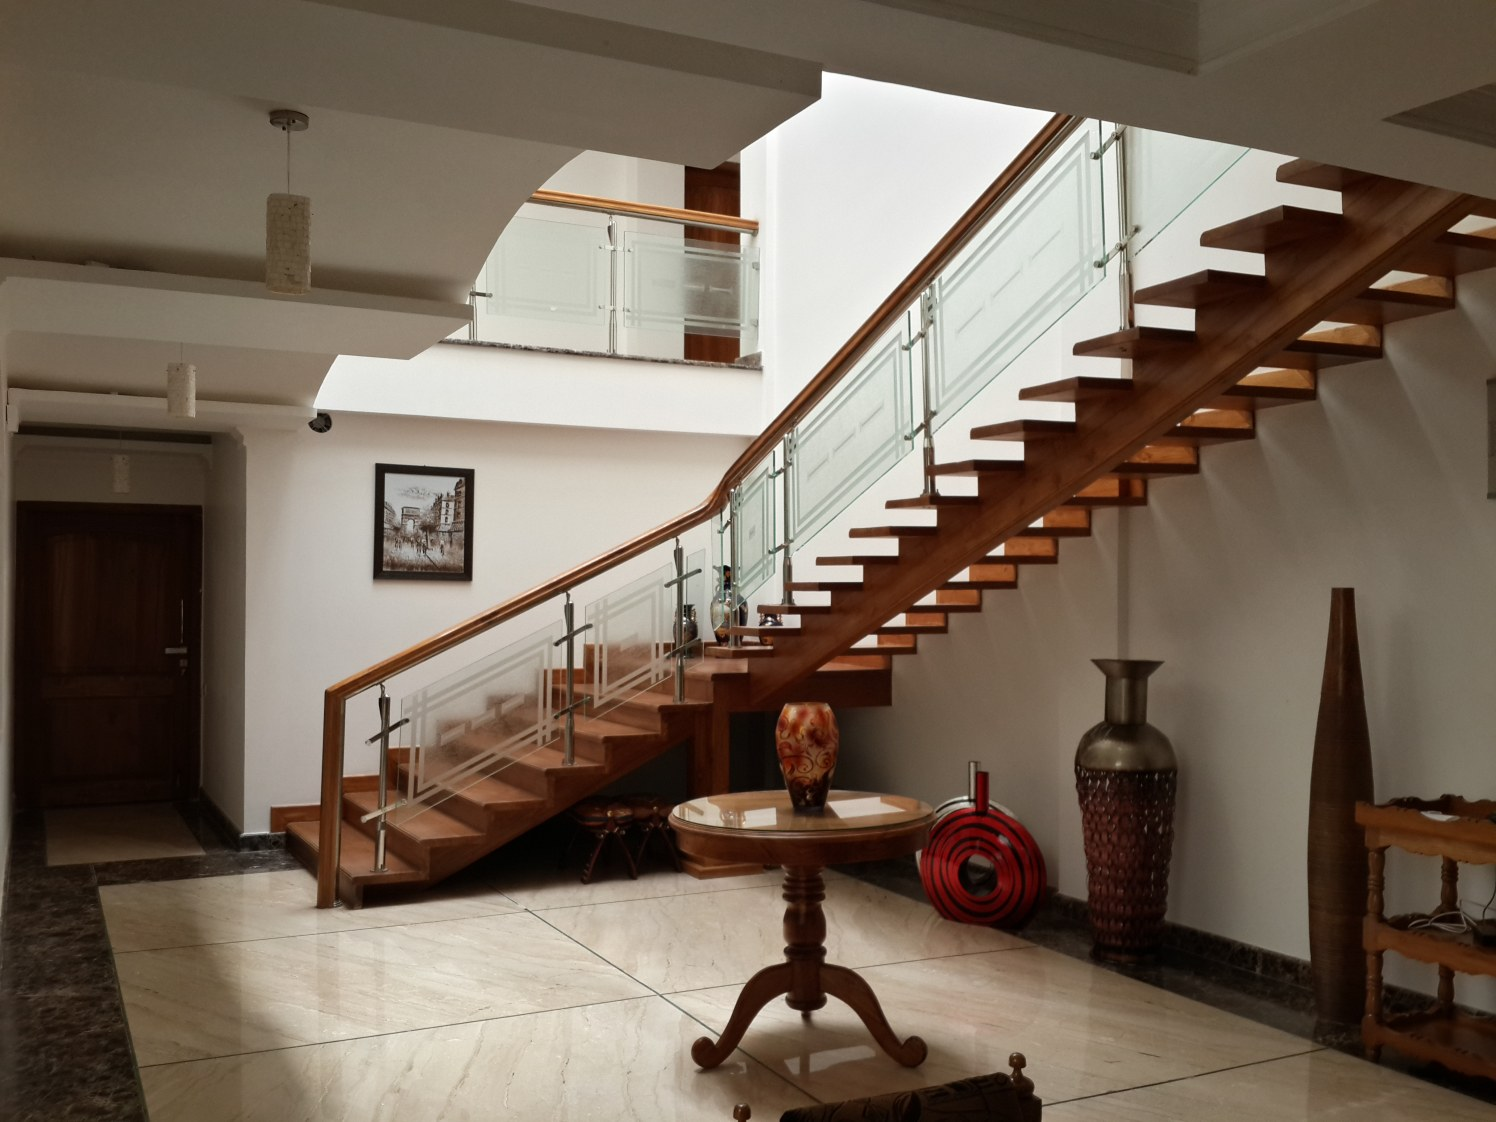 Staircase With Marble Flooring by Prashant Ghosh Contemporary | Interior Design Photos & Ideas